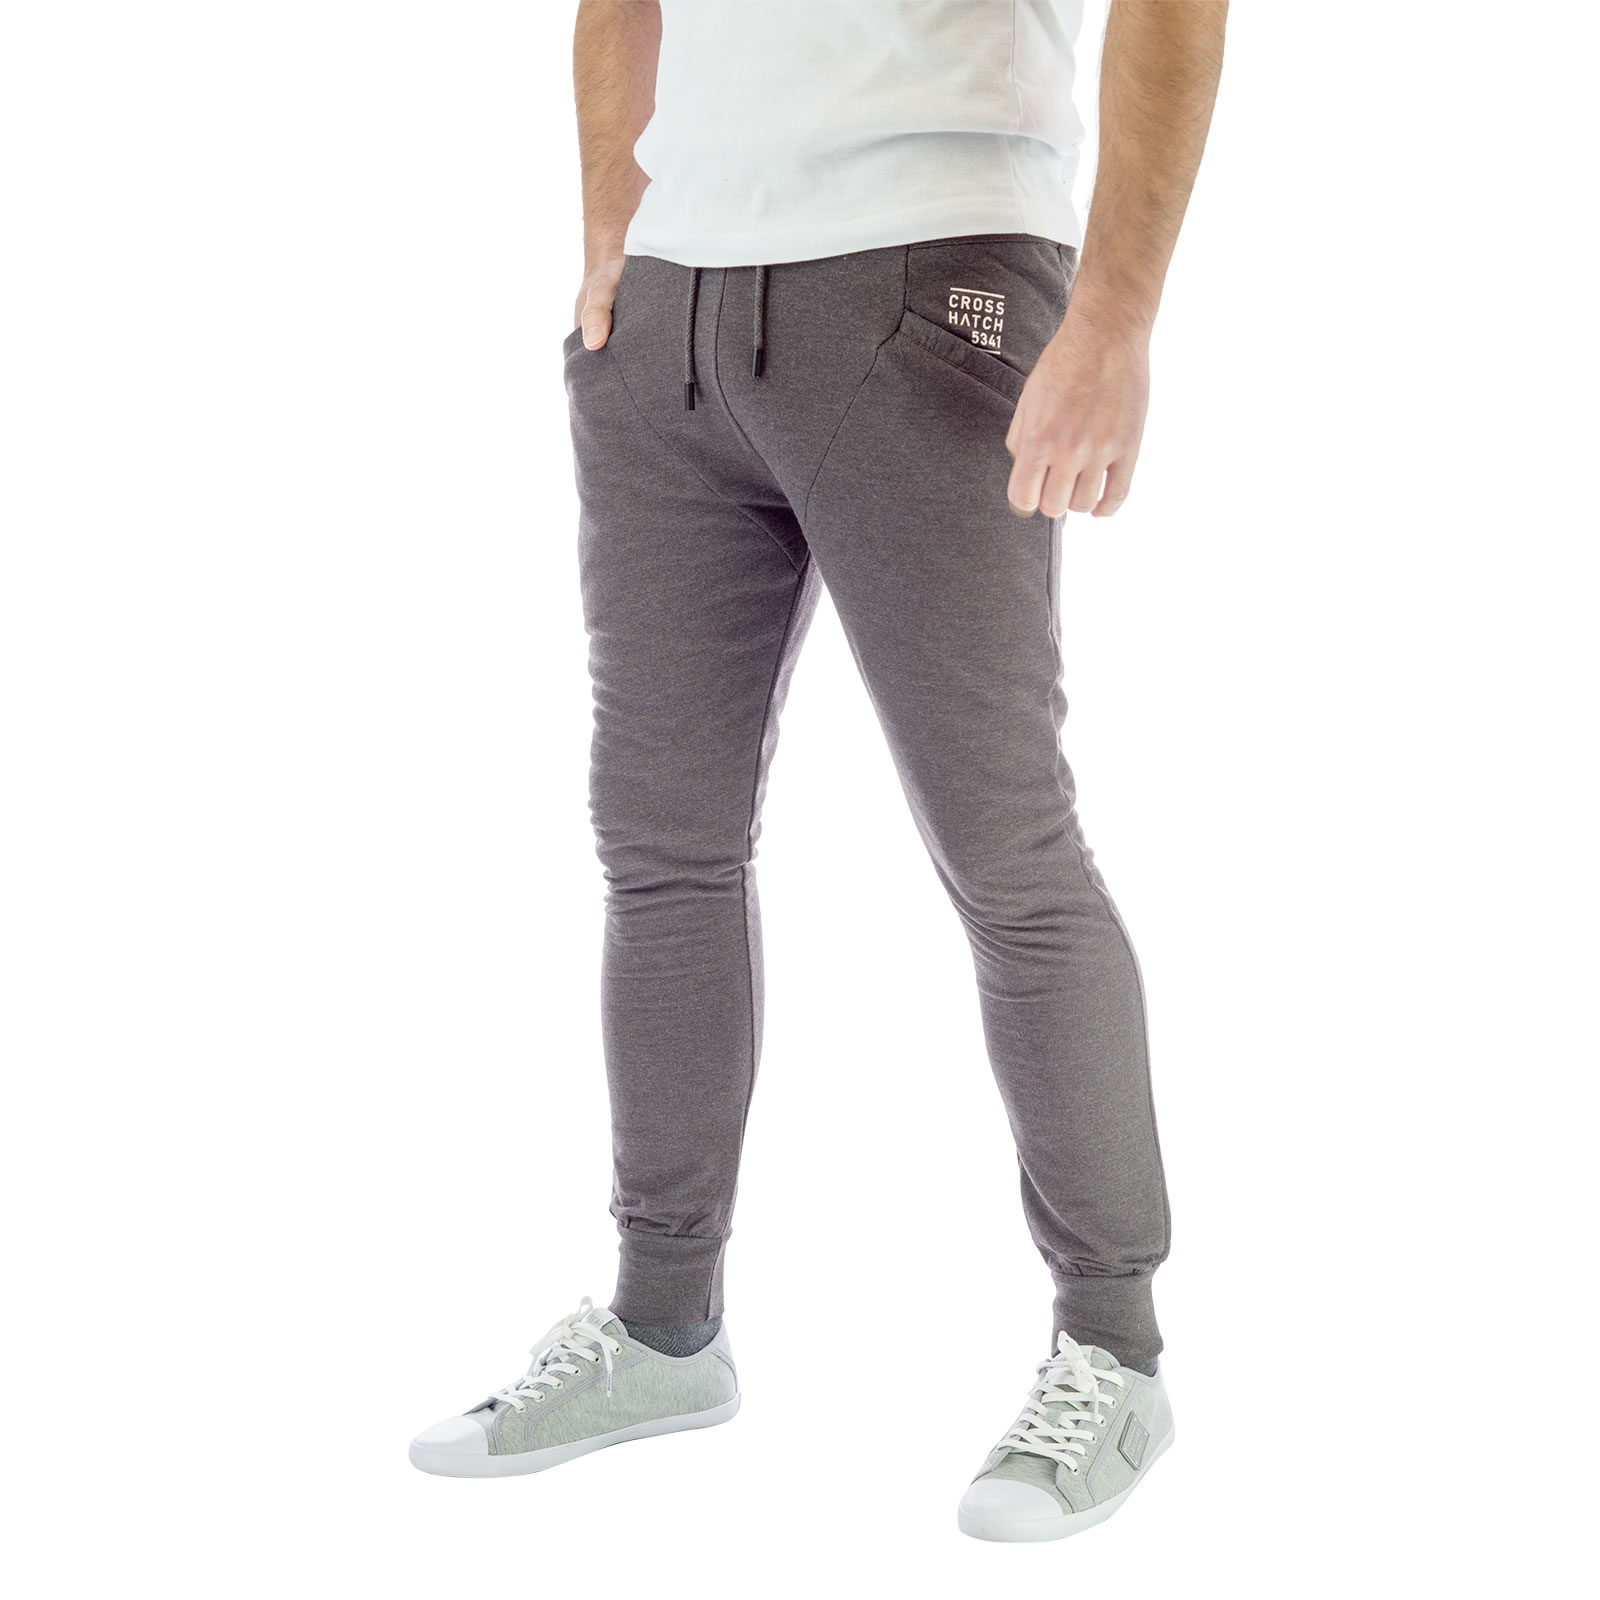 ... Slim Fit Jogging Bottoms; Picture 2 of 4; Picture 3 of 4 ...